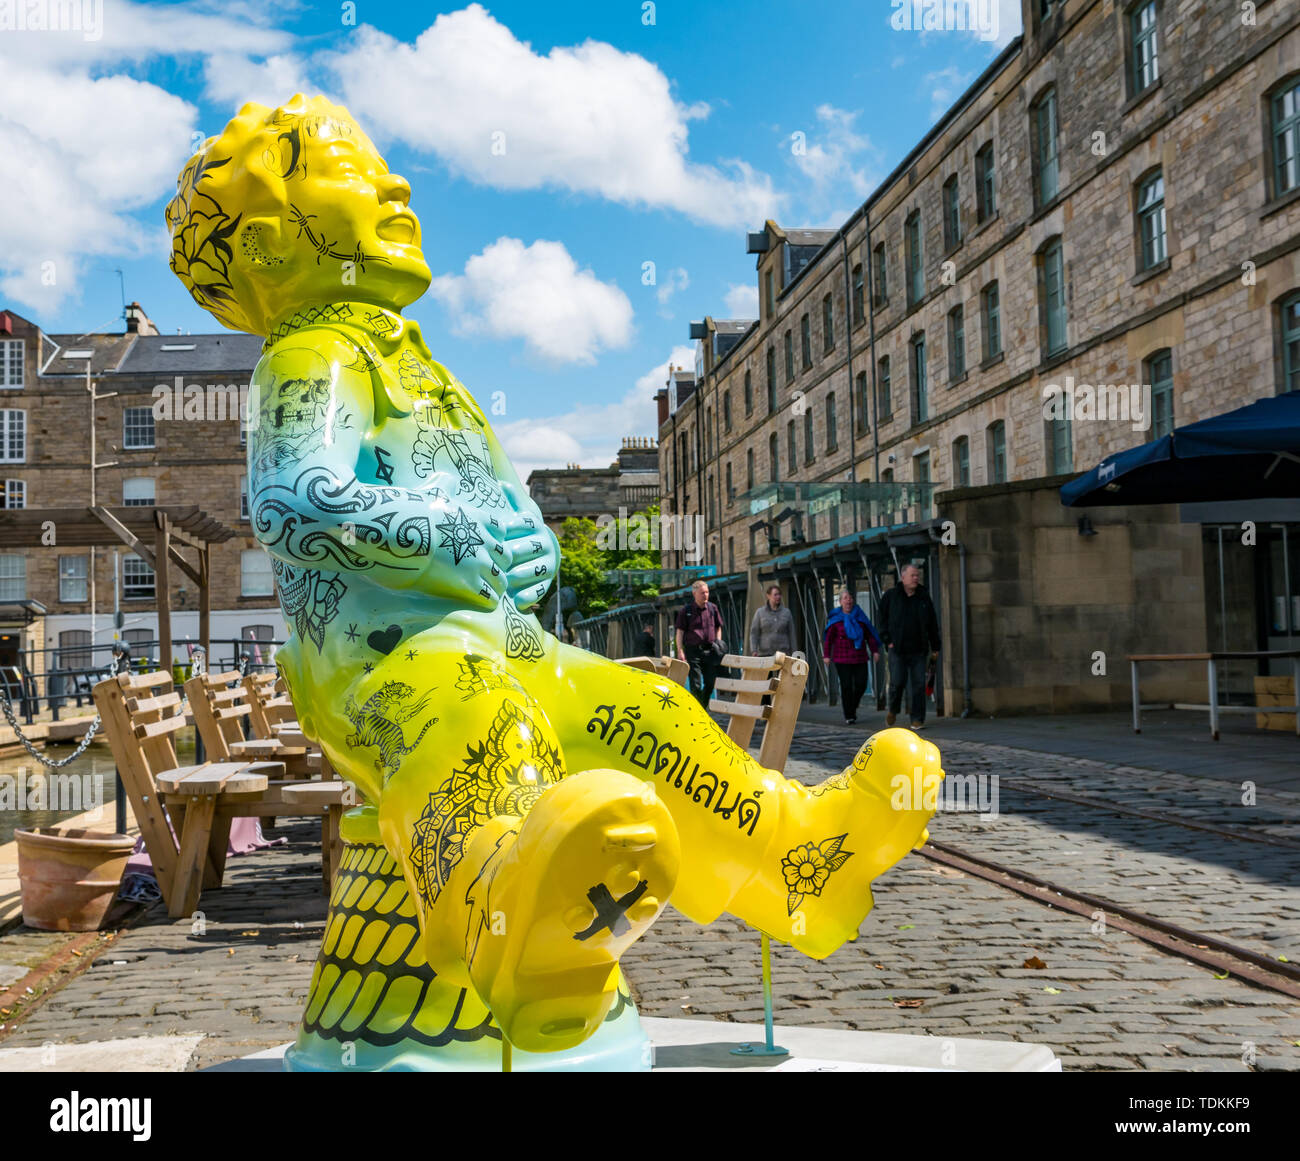 Leith, Edinburgh, Scotland, United Kingdom, 17 June 2019. Oor Wullie's Big Bucket Trail: An art trail of 200 Oor Wullie sculptures appear in Scottish cities in a mass arts event that lasts until August 30th. Oor Wullie is an iconic Scottish cartoon character from the Sunday Post newspaper. The sculptures will be auctioned to raise money for Scotland's children's hospital charities. There are 5 in the Leith area, and 60 in Edinburgh altogether.  Sailoor Wullie by The Leith Agency Stock Photo